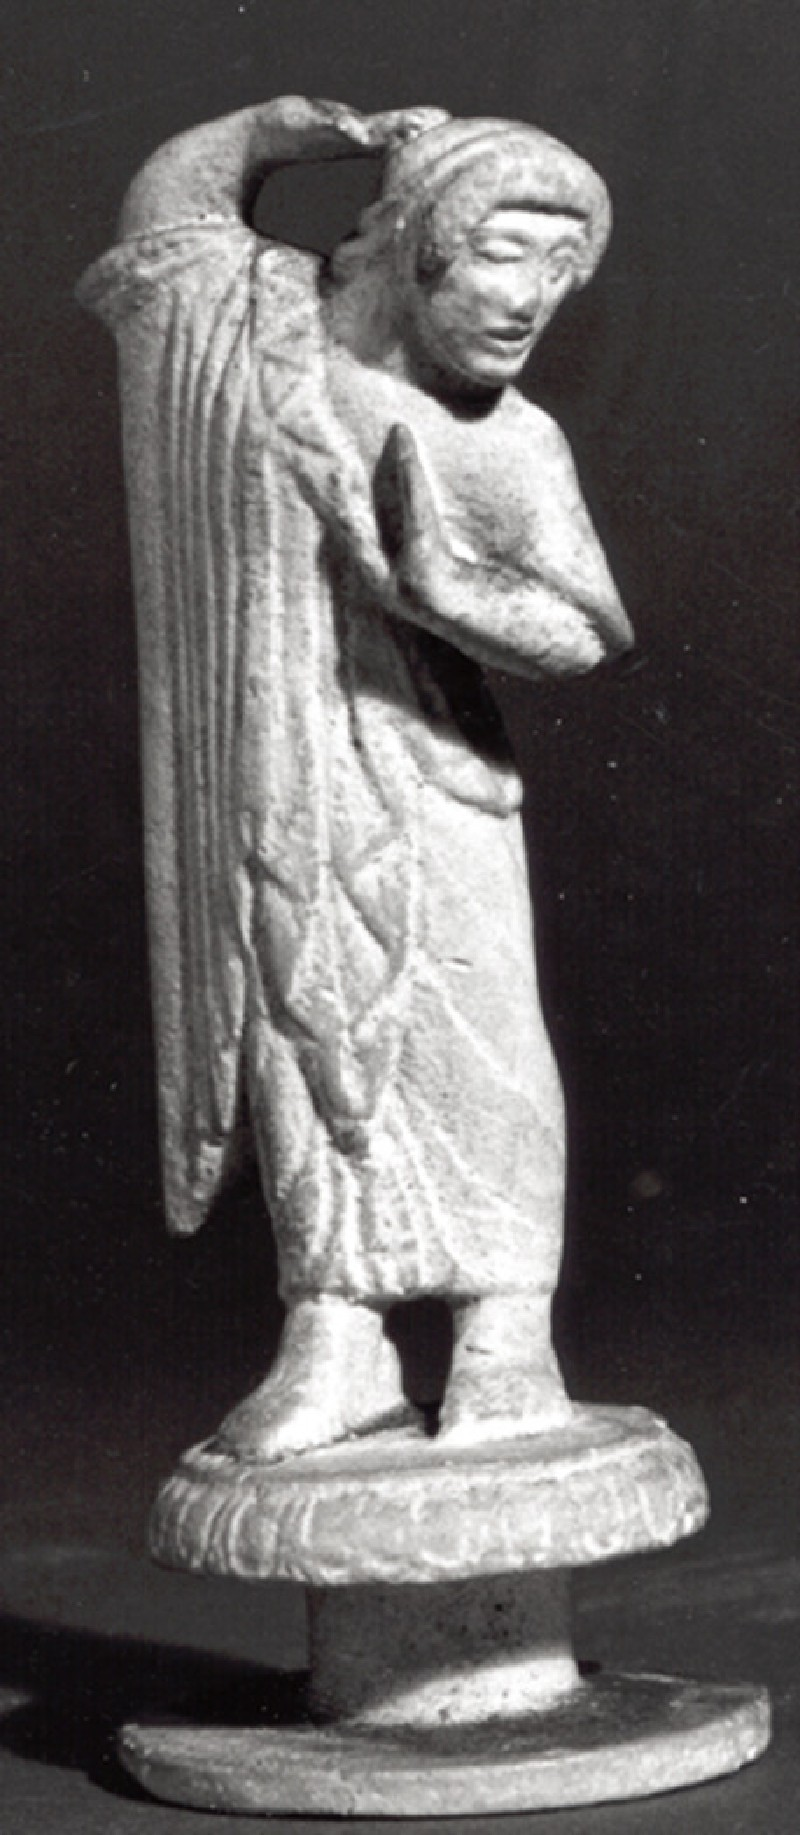 Cast of a statuette from a candelabrum, from Orvieto